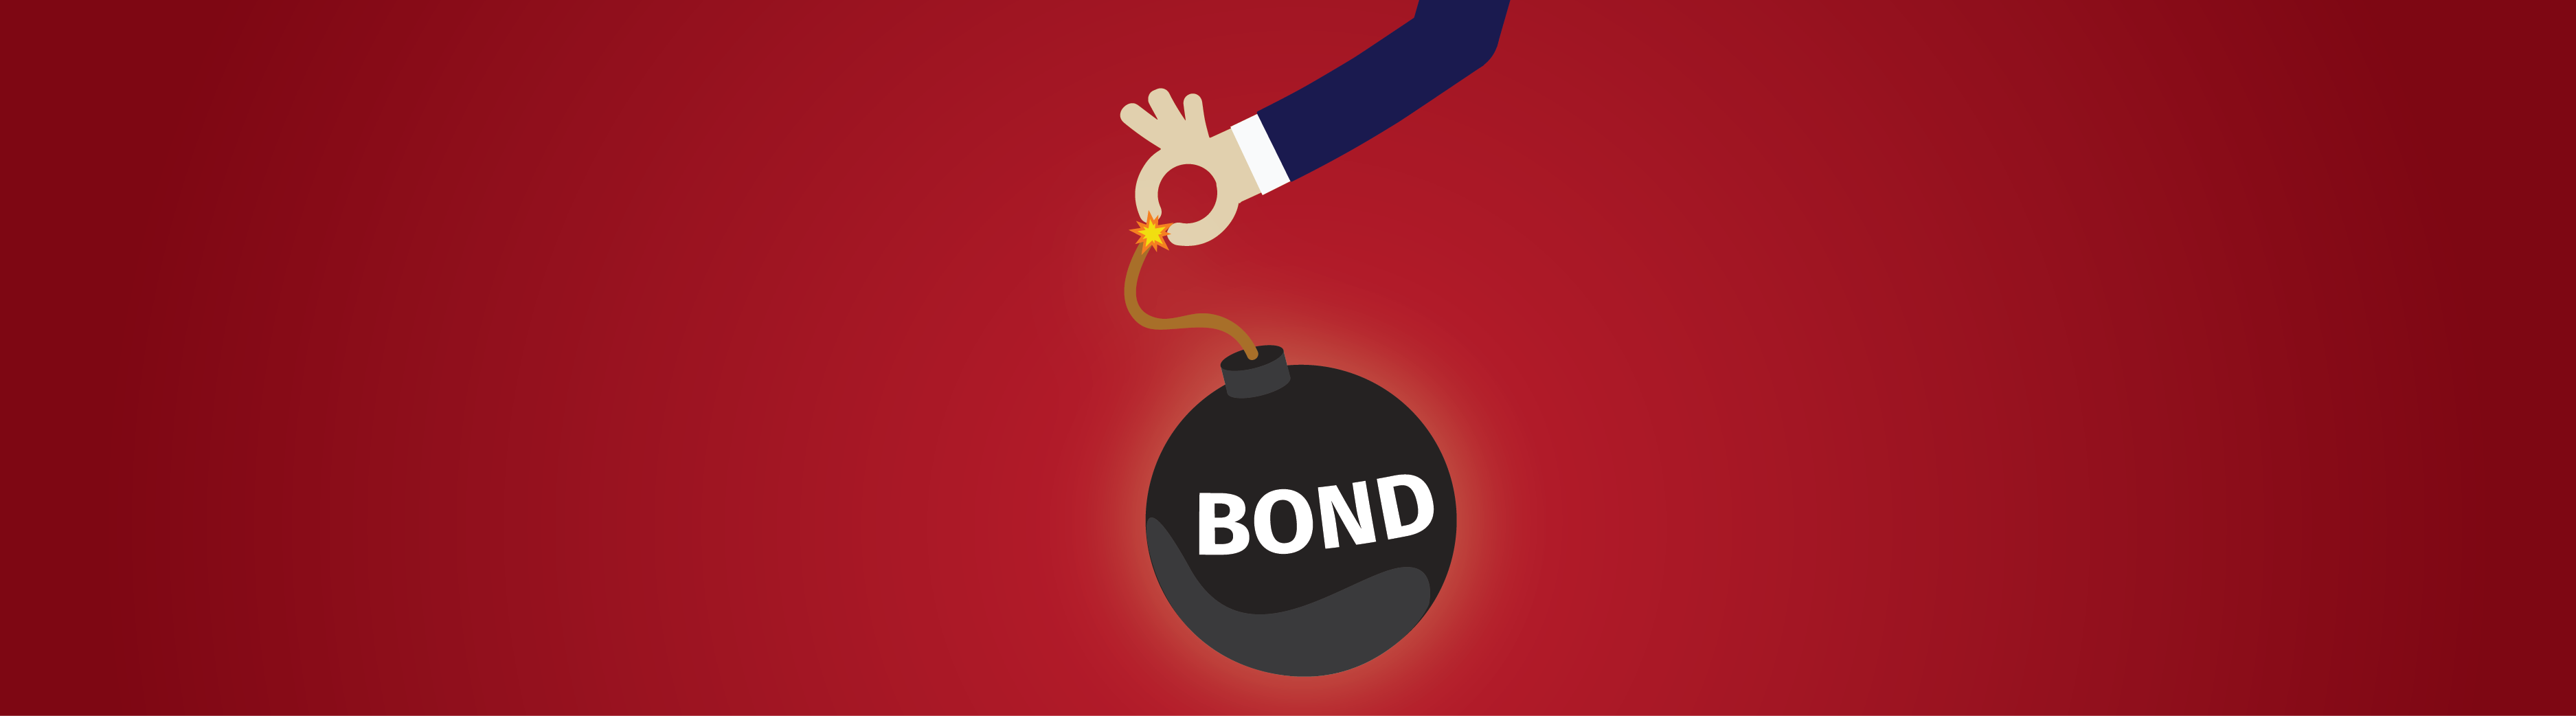 Why is my bond fund down?